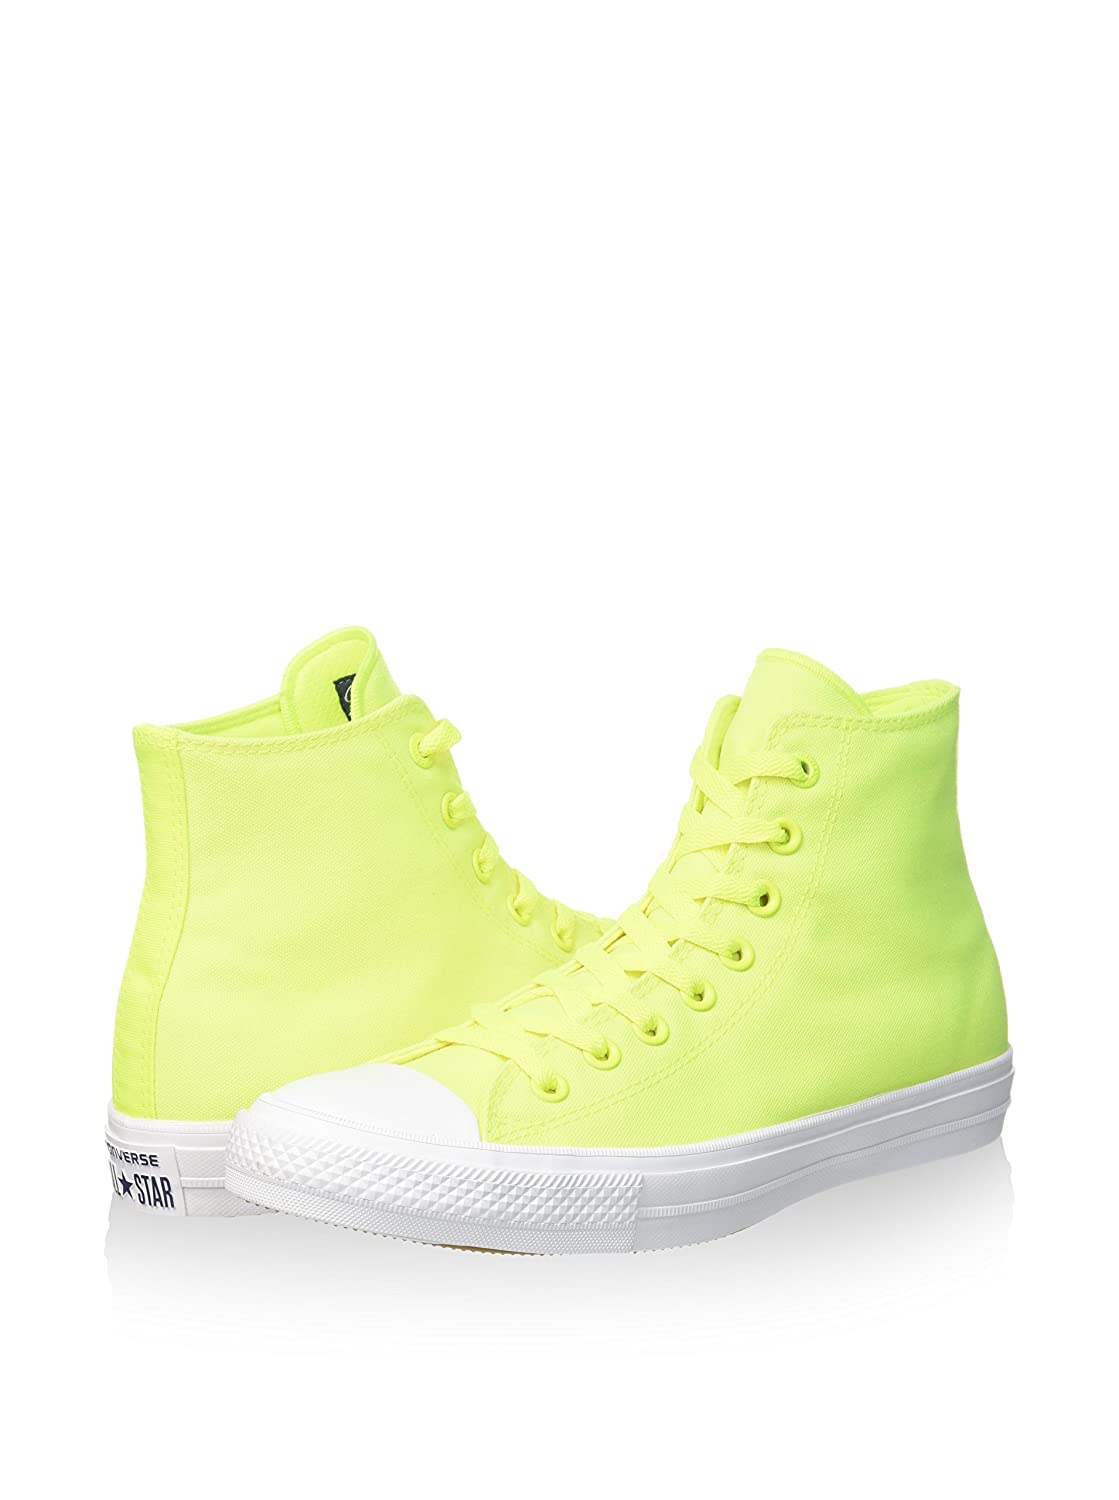 6b14baad4835 Converse Chuck Taylor All Star II Chaussures de Basketball Mixte Adulte,  Vert (Volt Green/White/Neon) 45 EU: Amazon.fr: Chaussures et Sacs